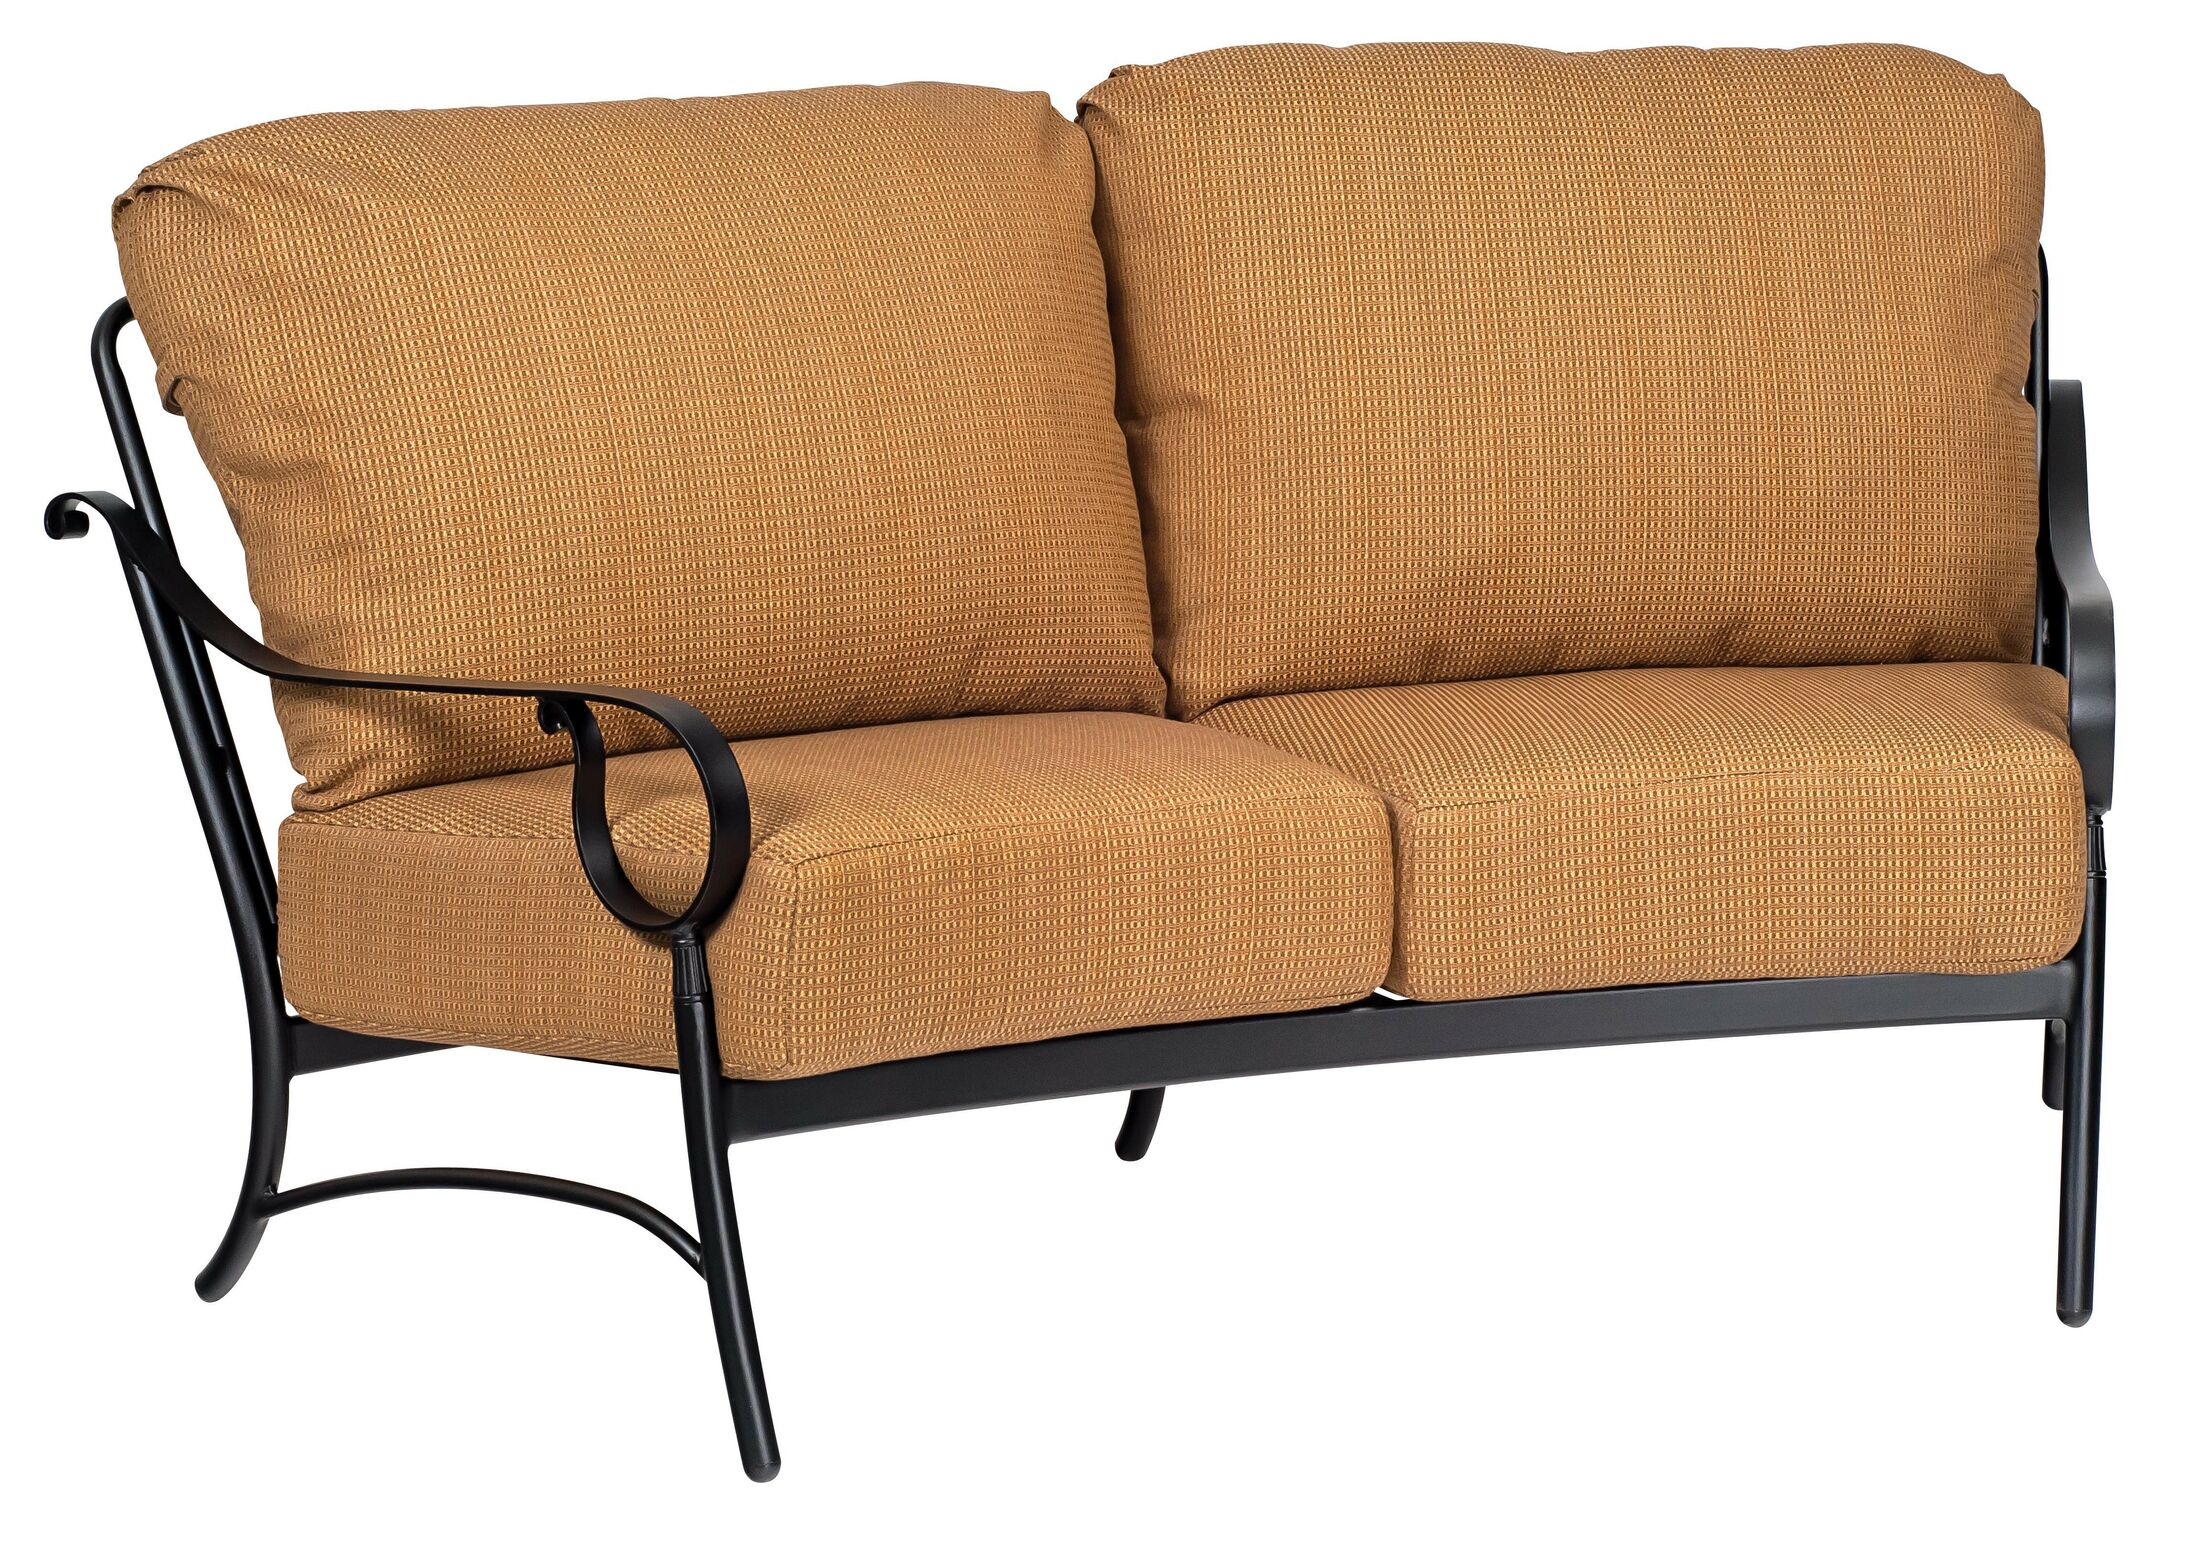 Ridgecrest Crescent Loveseat with Cushions Frame Color: Espresso, Cushion Color: Axel Smoke